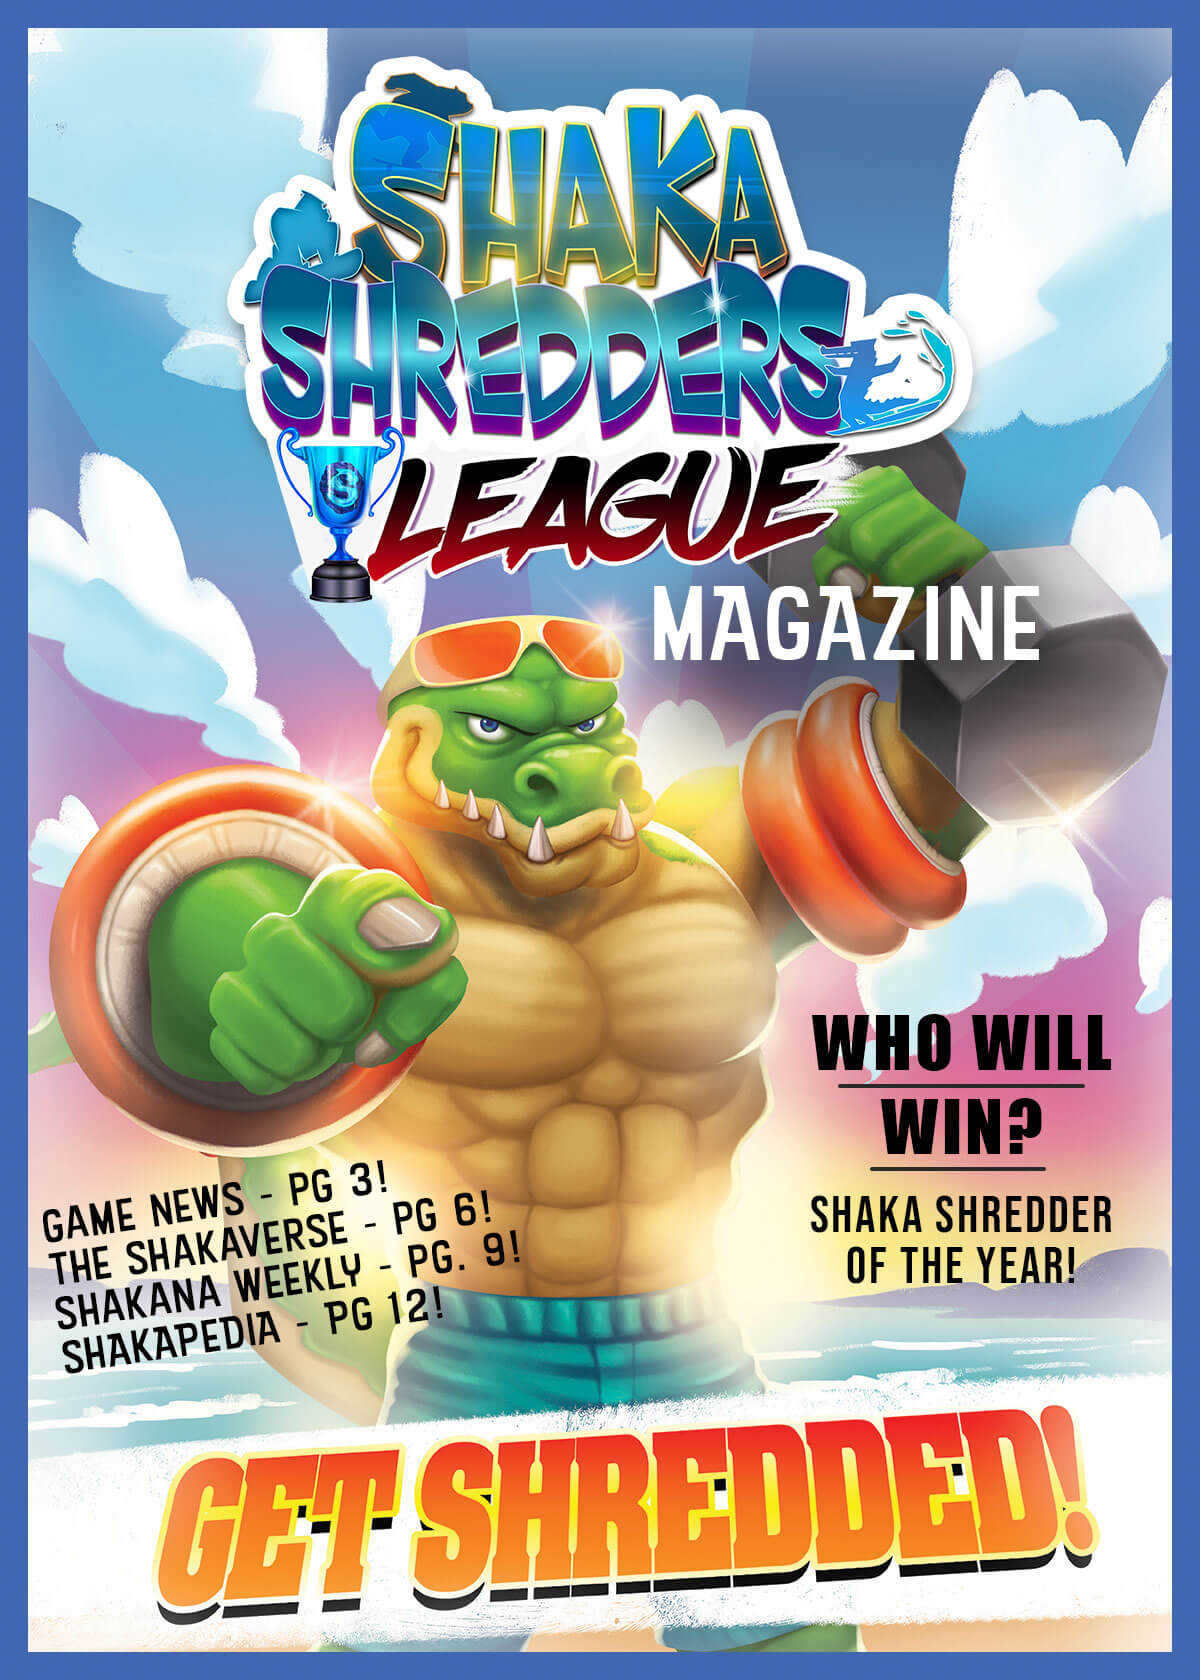 Shaka Shredders League Magazine - Shredzilla Cover